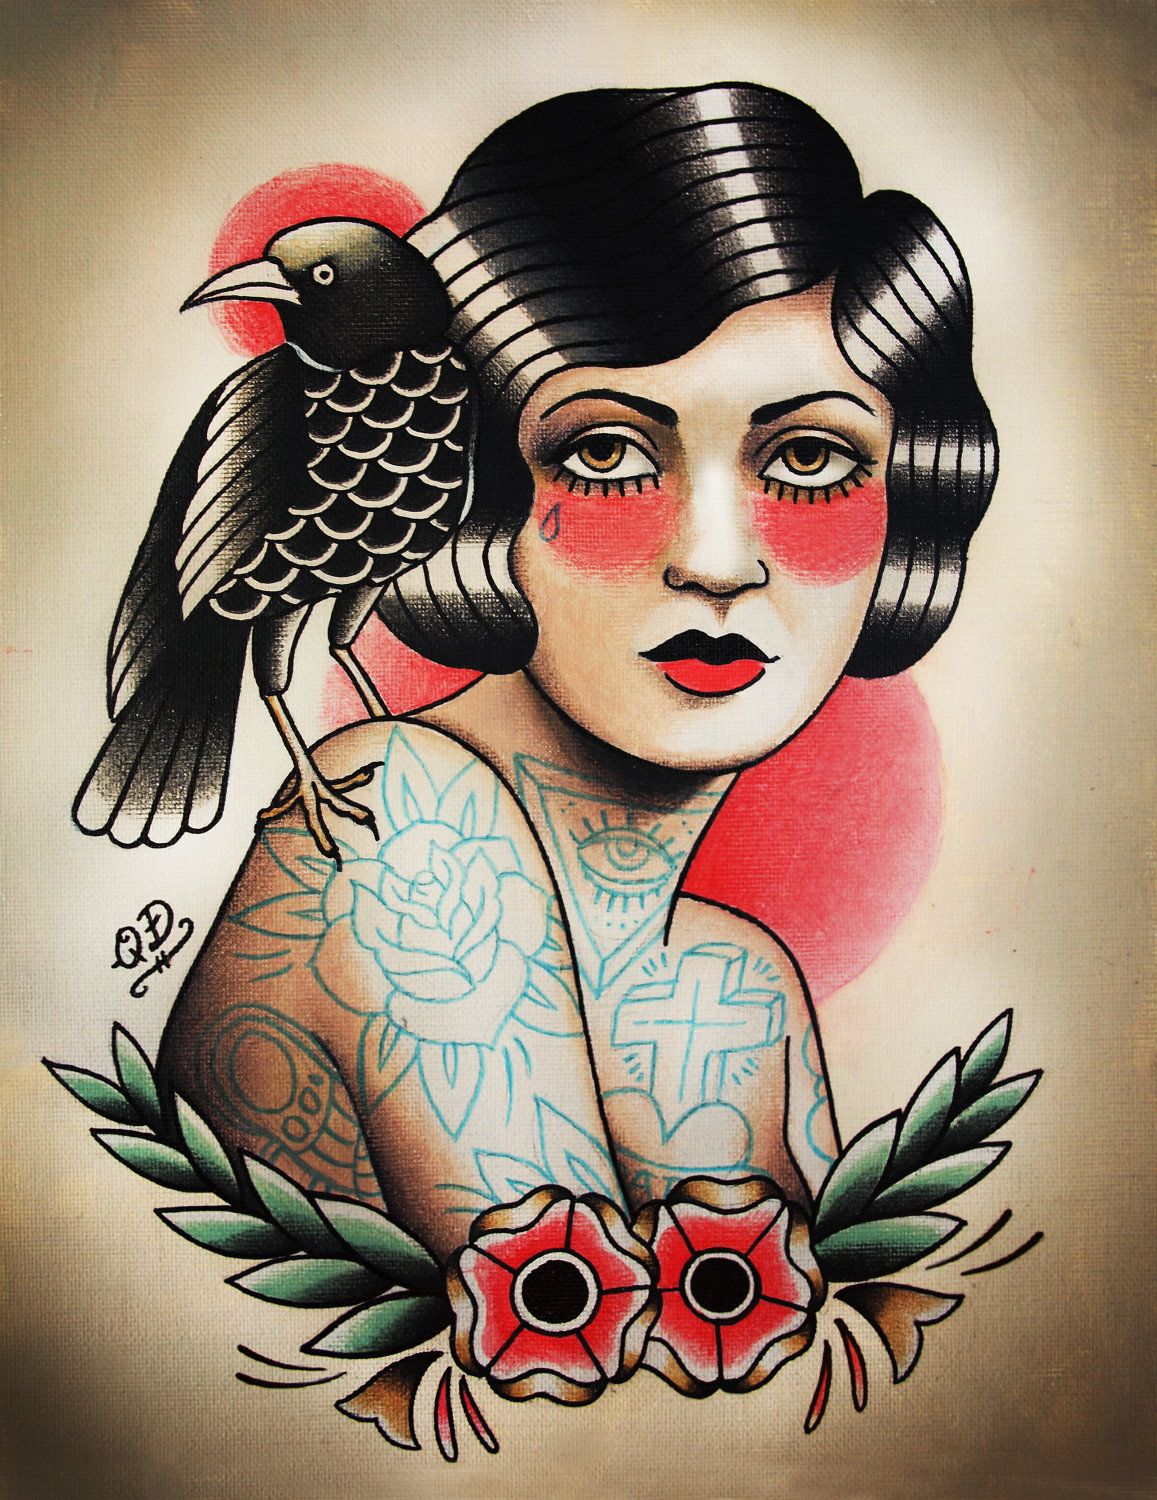 I really like the style of this tatto and also the shade for Ravens face tattoos